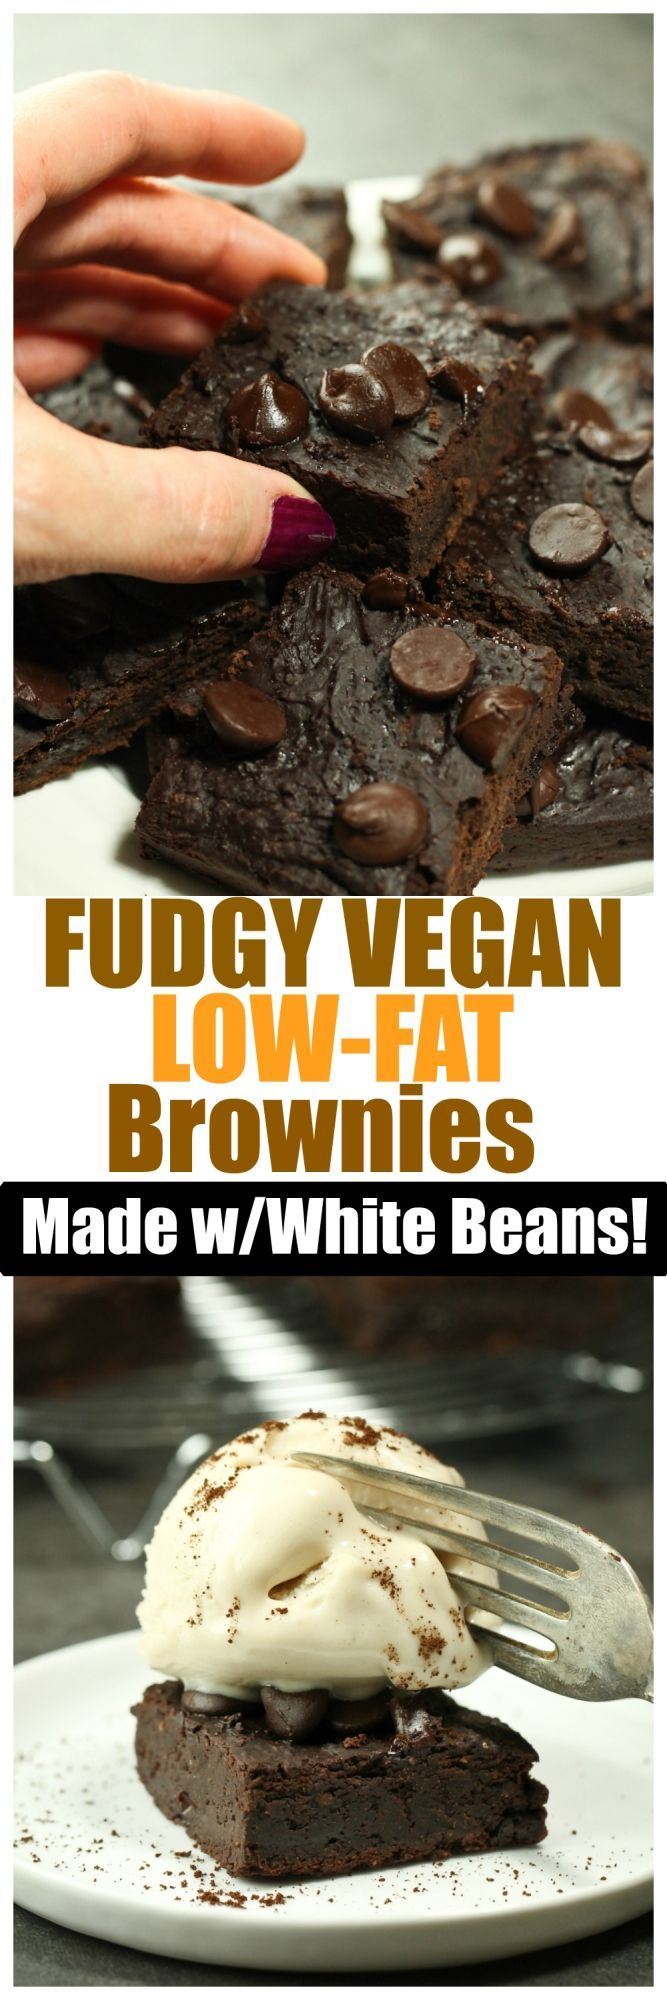 These Fudgy Vegan Gluten-Free Low-Fat Brownies are made in the food processor with no bowl required! These are the most decadent, rich and fudgy brownies without the guilt! You will truly be amazed that these are so low-fat! via @thevegan8